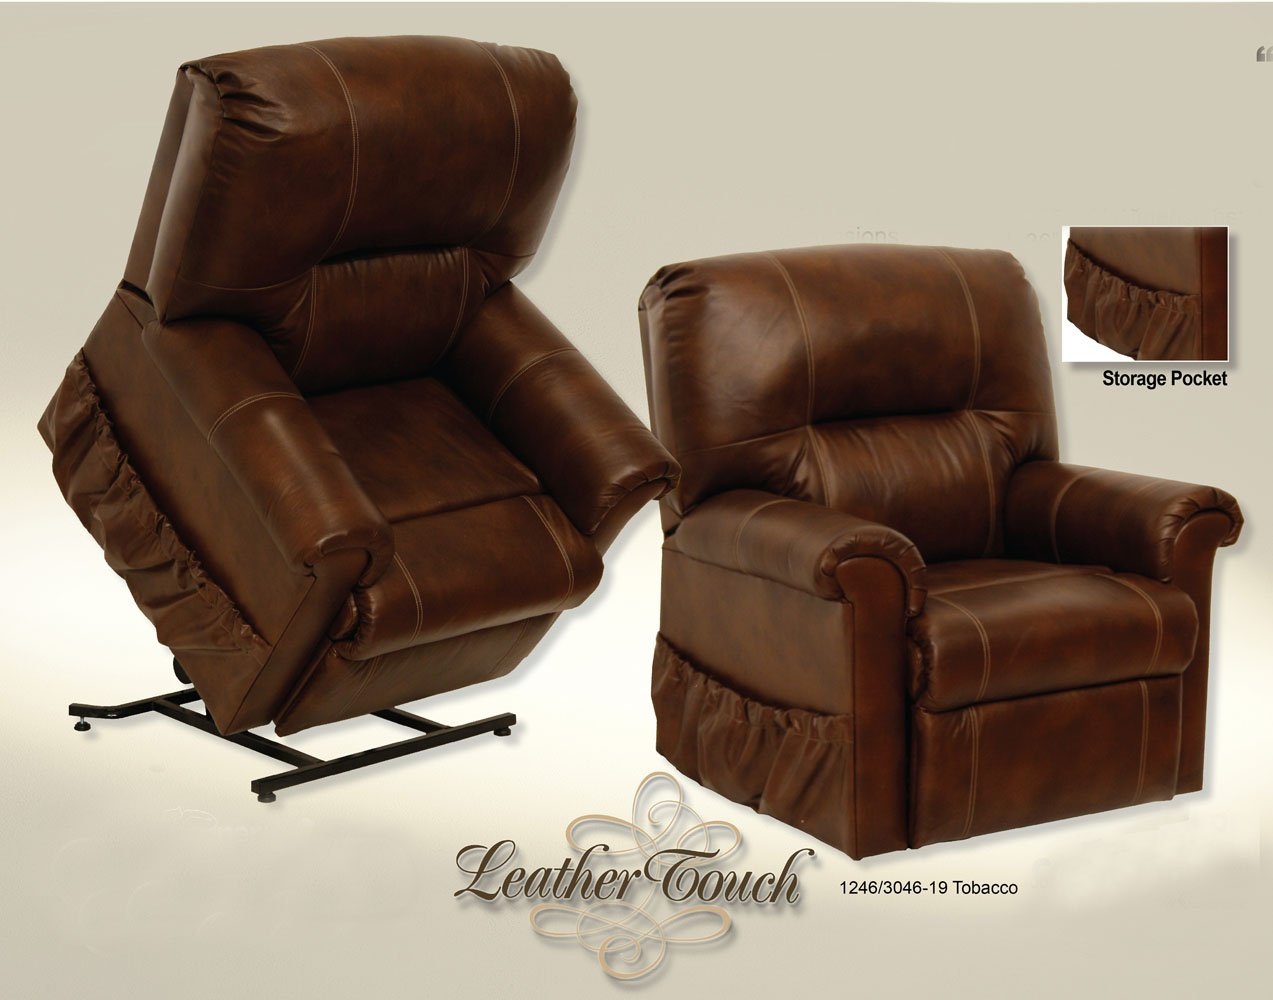 side patio set products natural outdoor pc table furniture heavy recliner duty recliners two and tan piece breckenridge